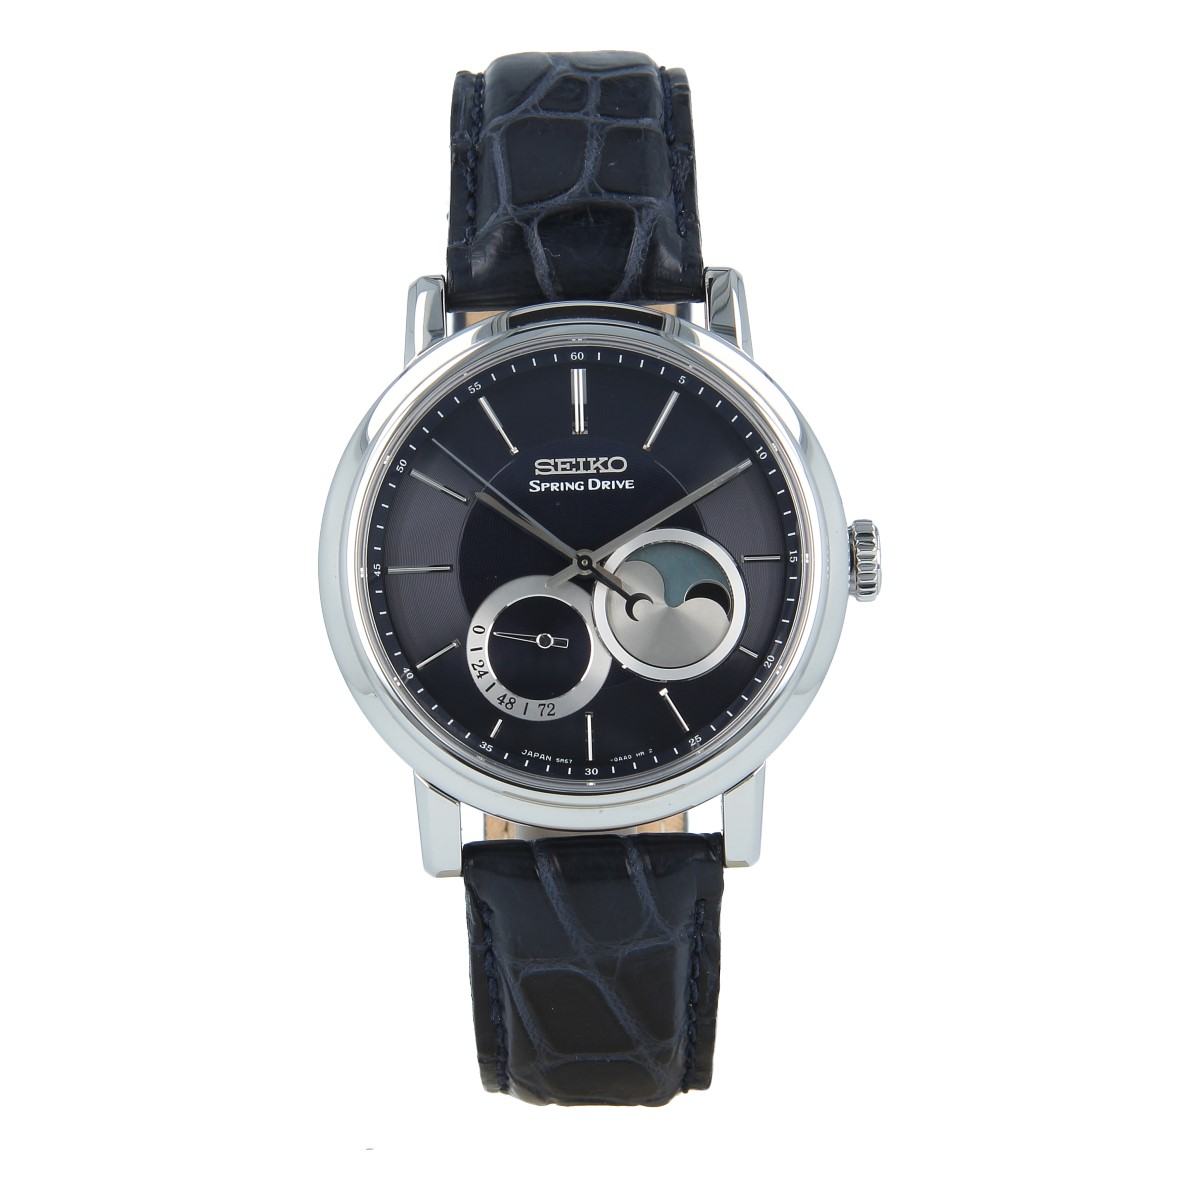 Seiko Spring Drive Moon Phase SNR011 Limited Ed. | Buy second hand Seiko watches